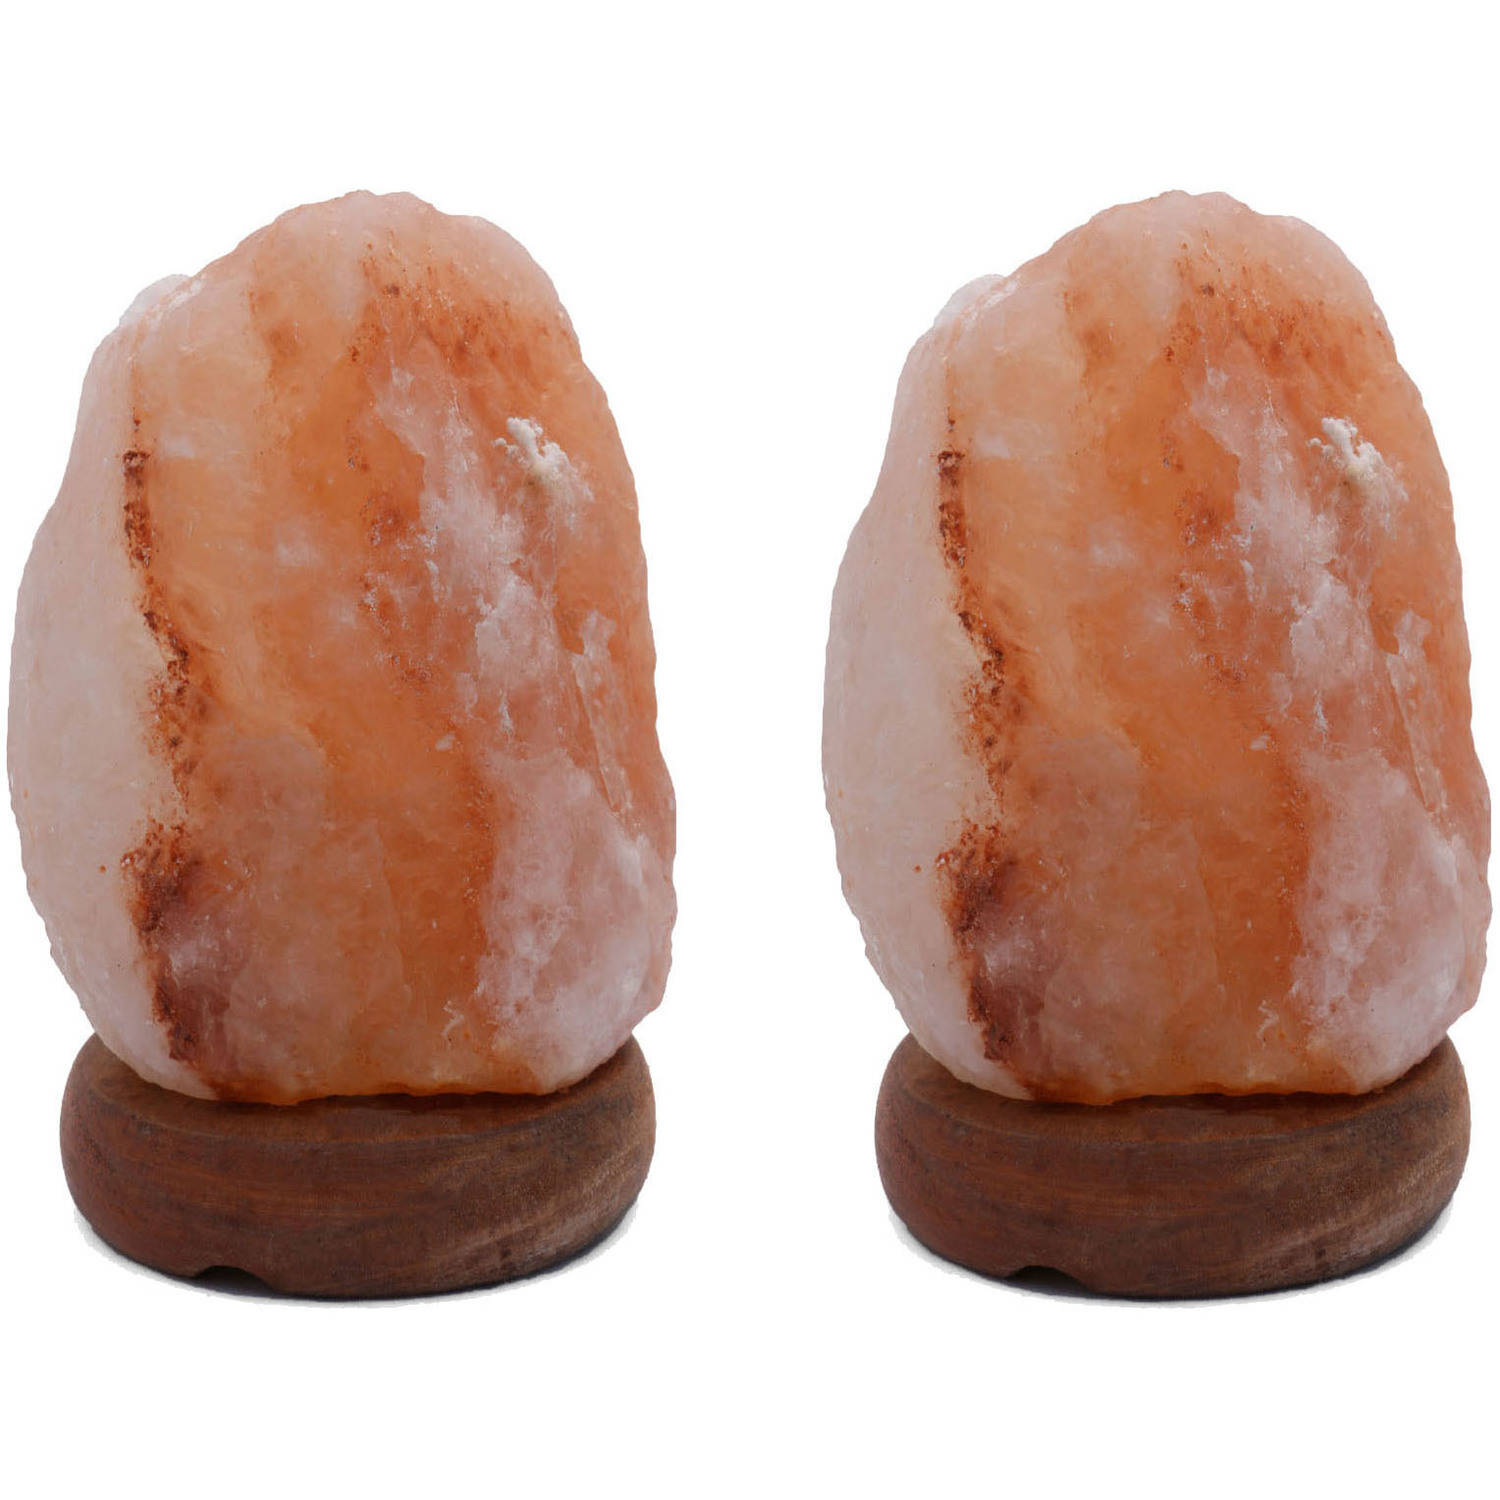 "Accentuations by Manhattan Comfort 8"" Natural Shaped Himalayan Salt Lamp 1.8, Set of 2 with Dimmer"